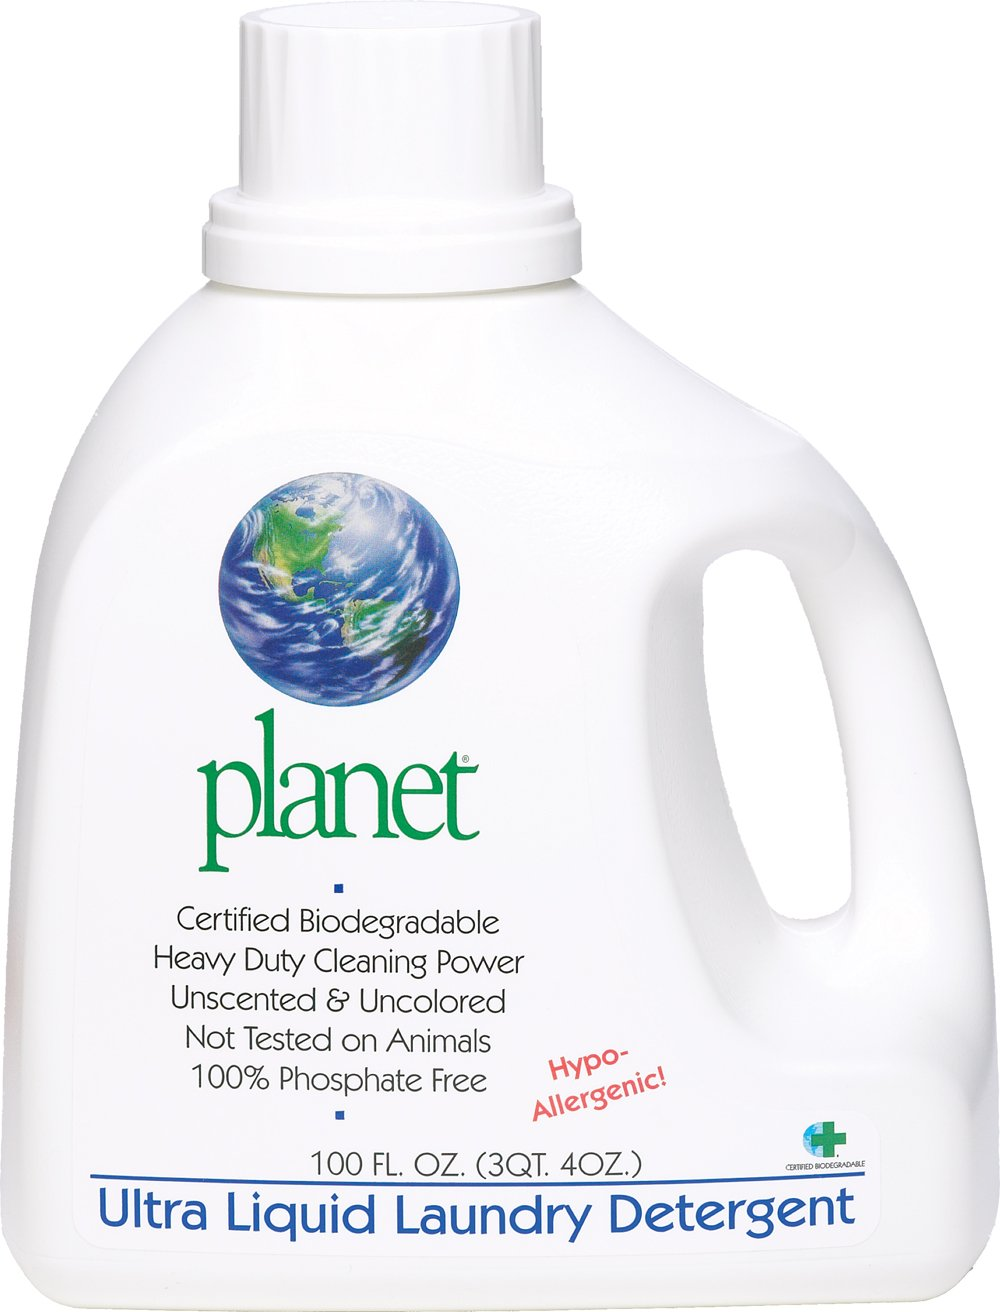 Amazon planet ultra liquid laundry detergent 100 fluid ounce amazon planet ultra liquid laundry detergent 100 fluid ounce bottles pack of 4 health personal care solutioingenieria Image collections